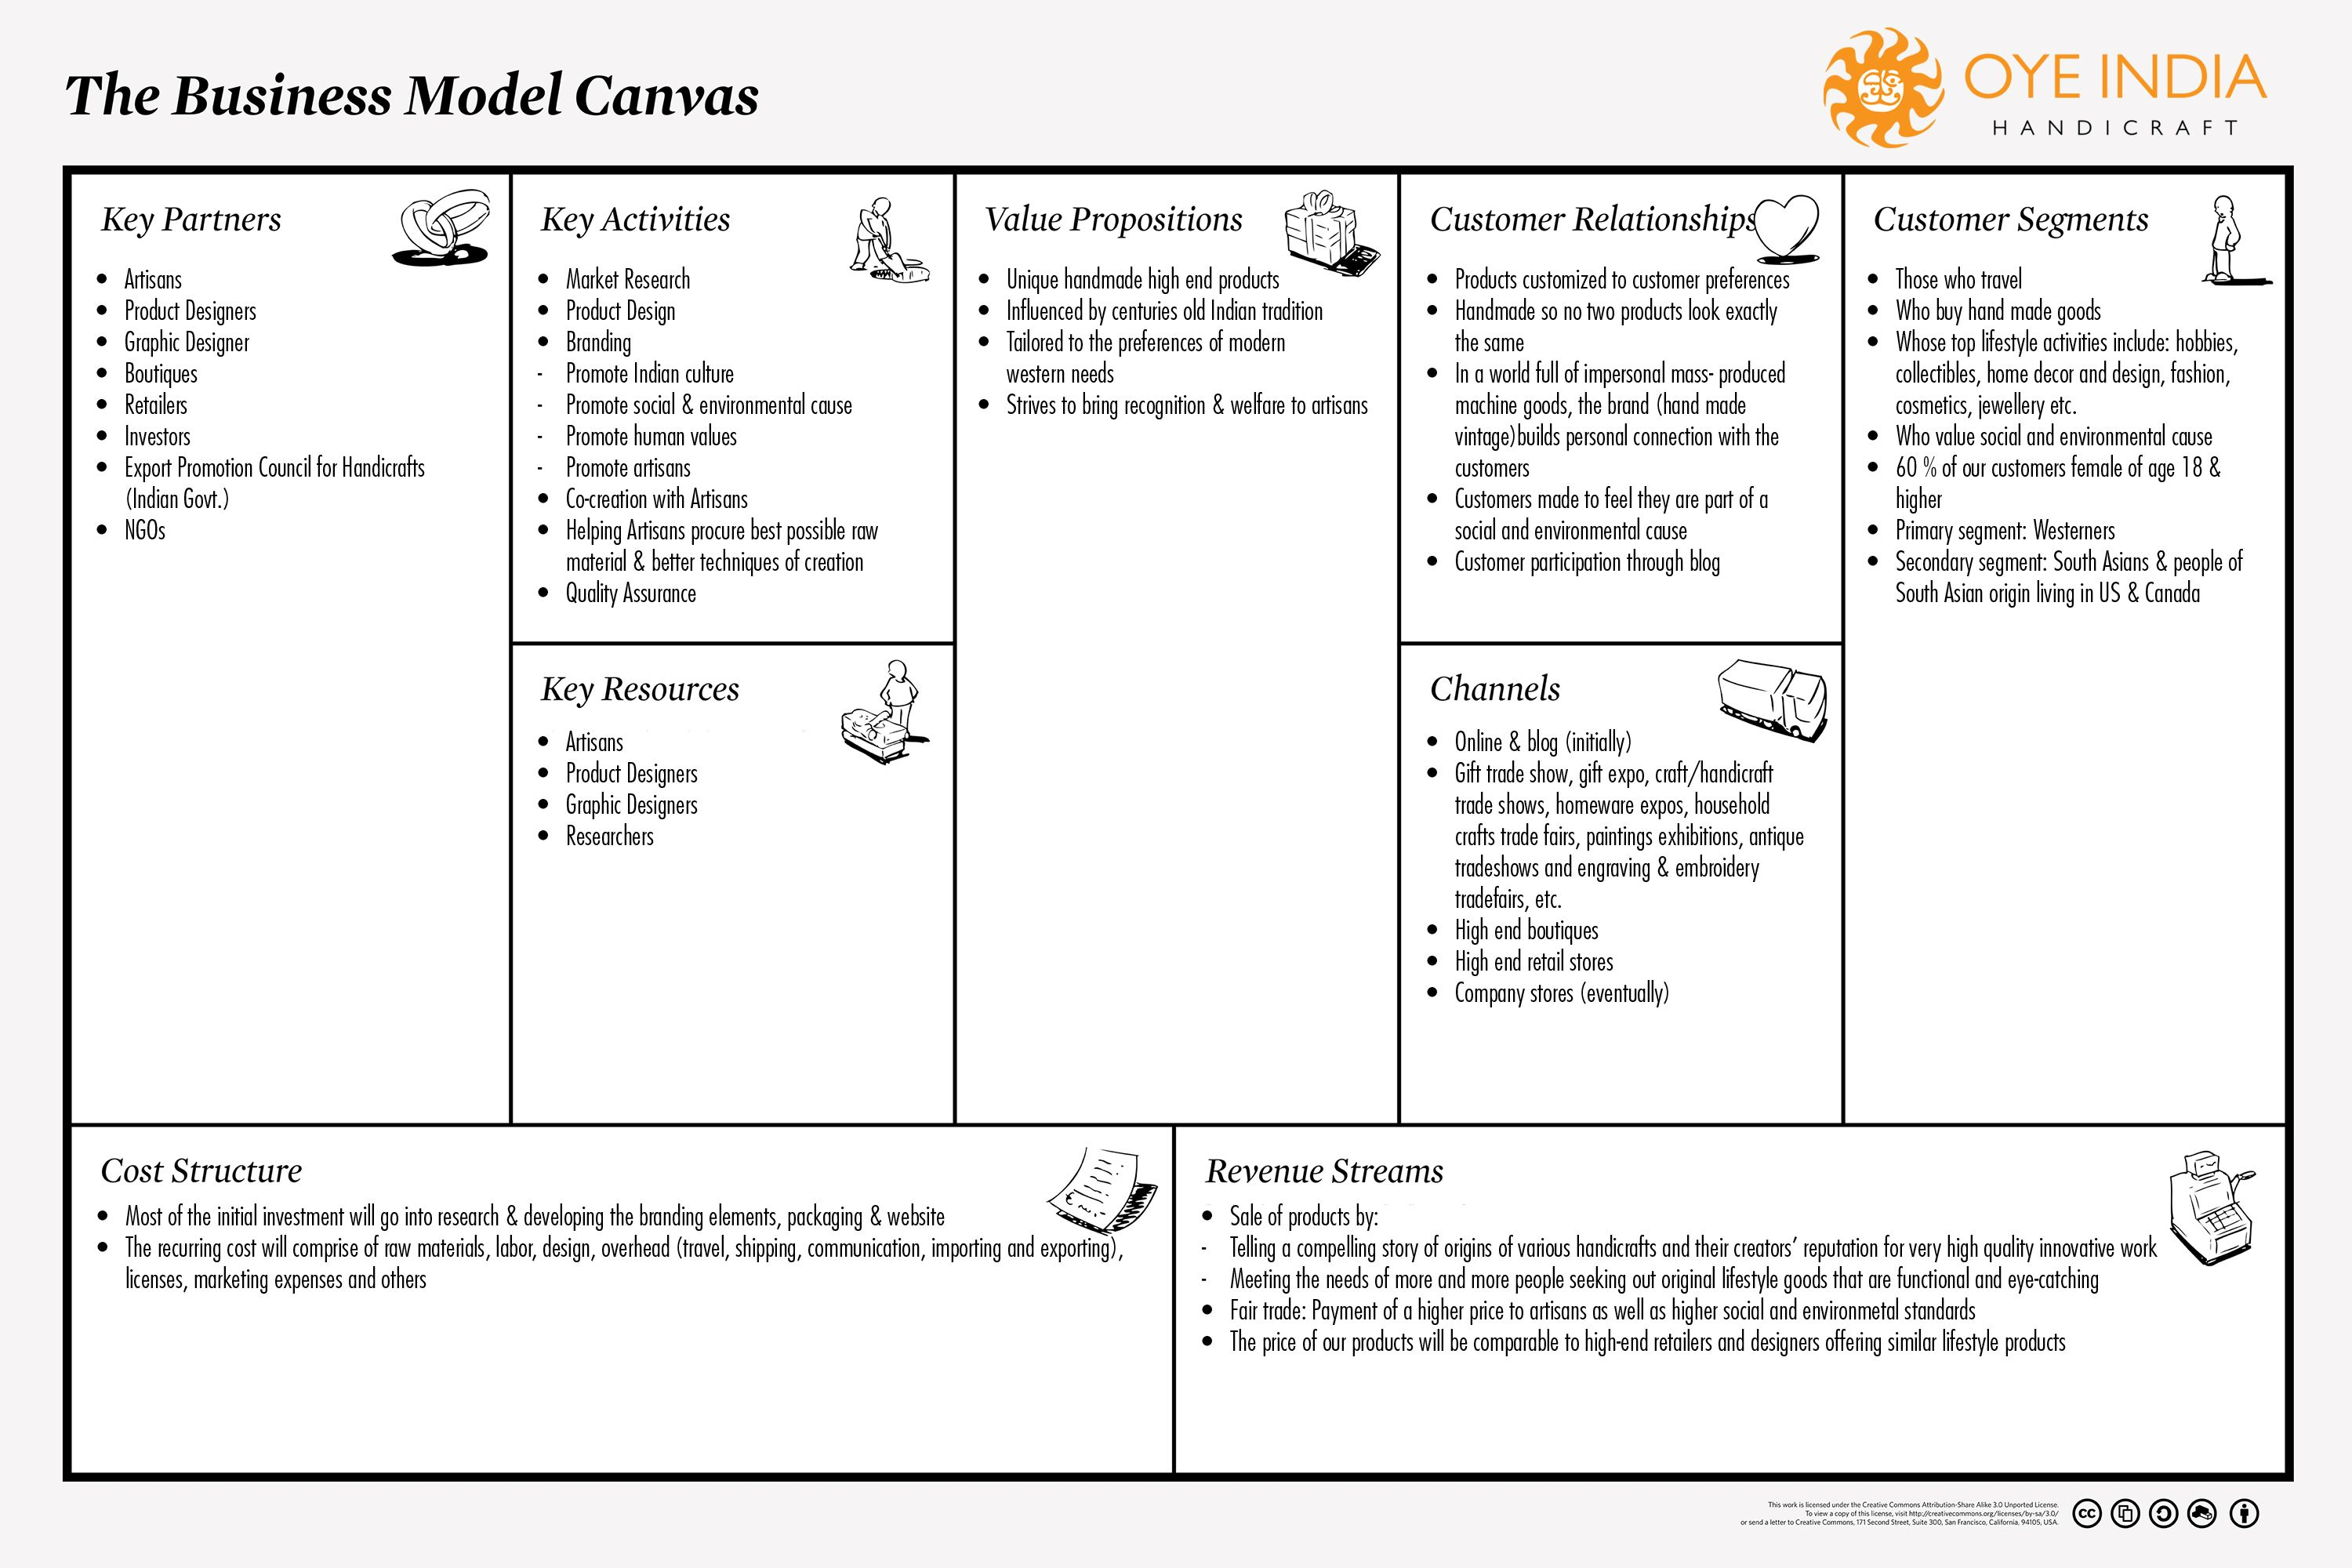 Oye India Handicraft  Business Model Canvas